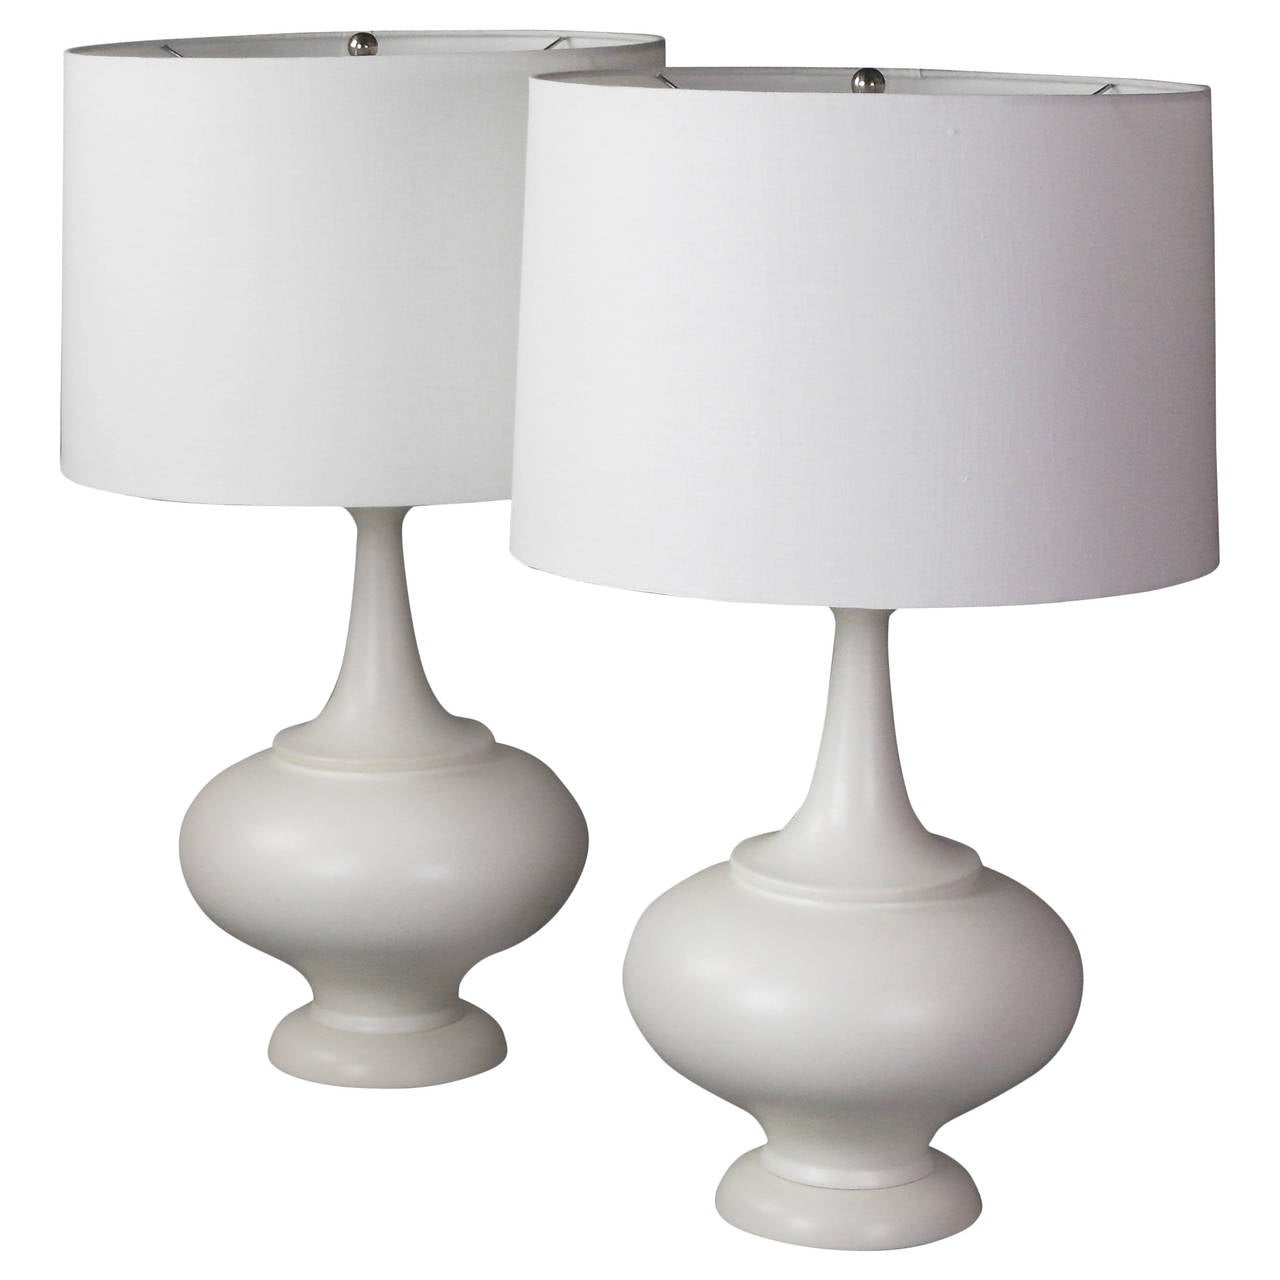 pair of midcentury large white ceramic lamps for sale at. Black Bedroom Furniture Sets. Home Design Ideas